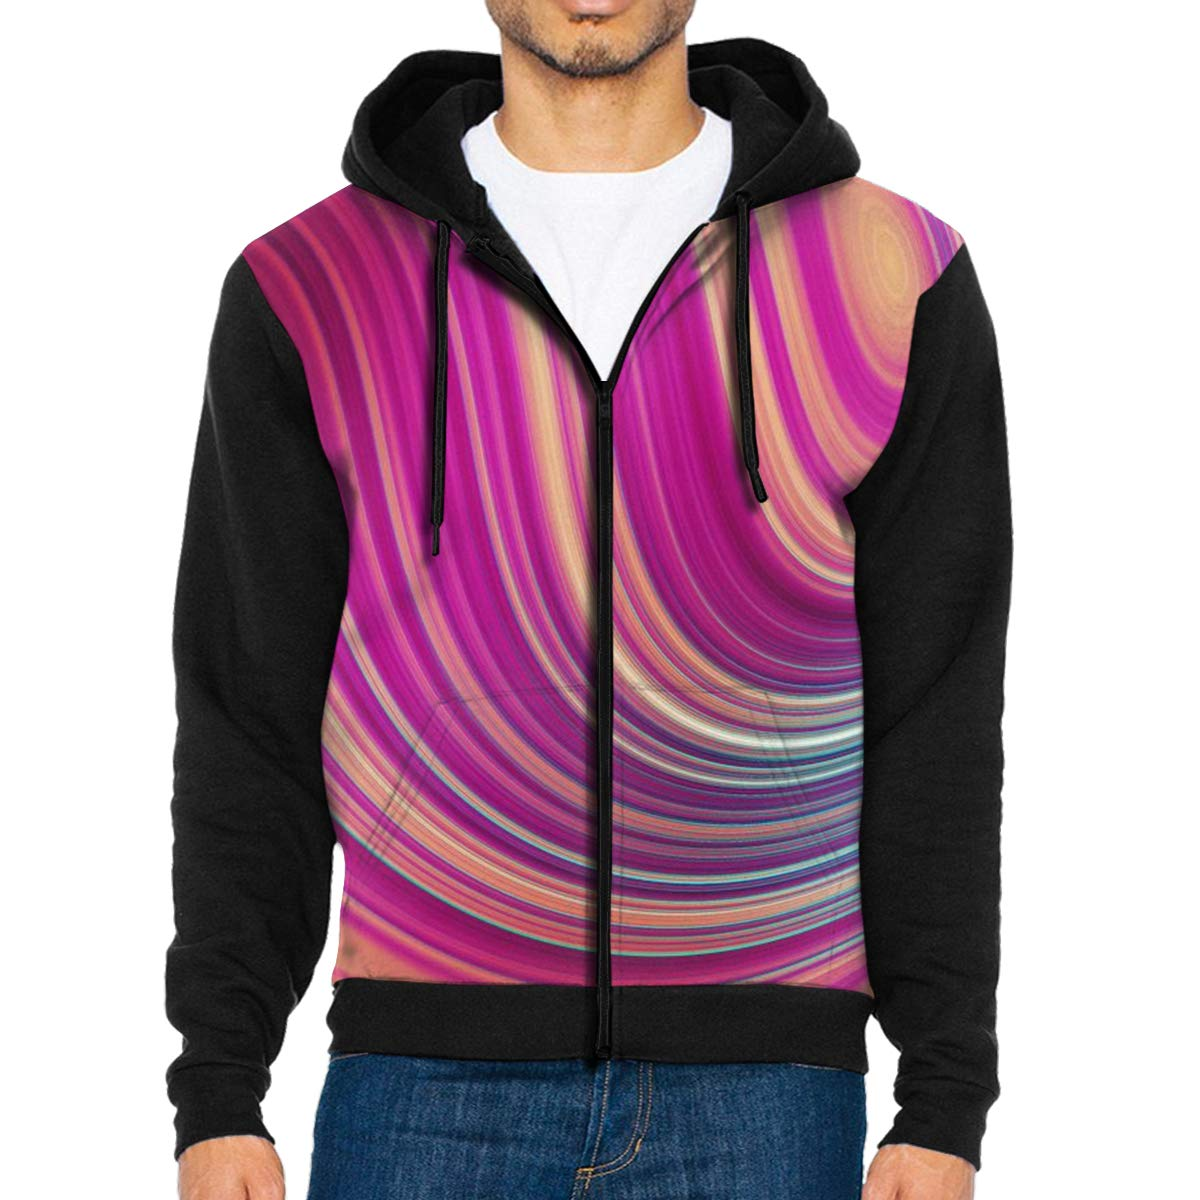 Colorful Moves Lightweight Mans Jacket with Hood Long Sleeved Zippered Outwear